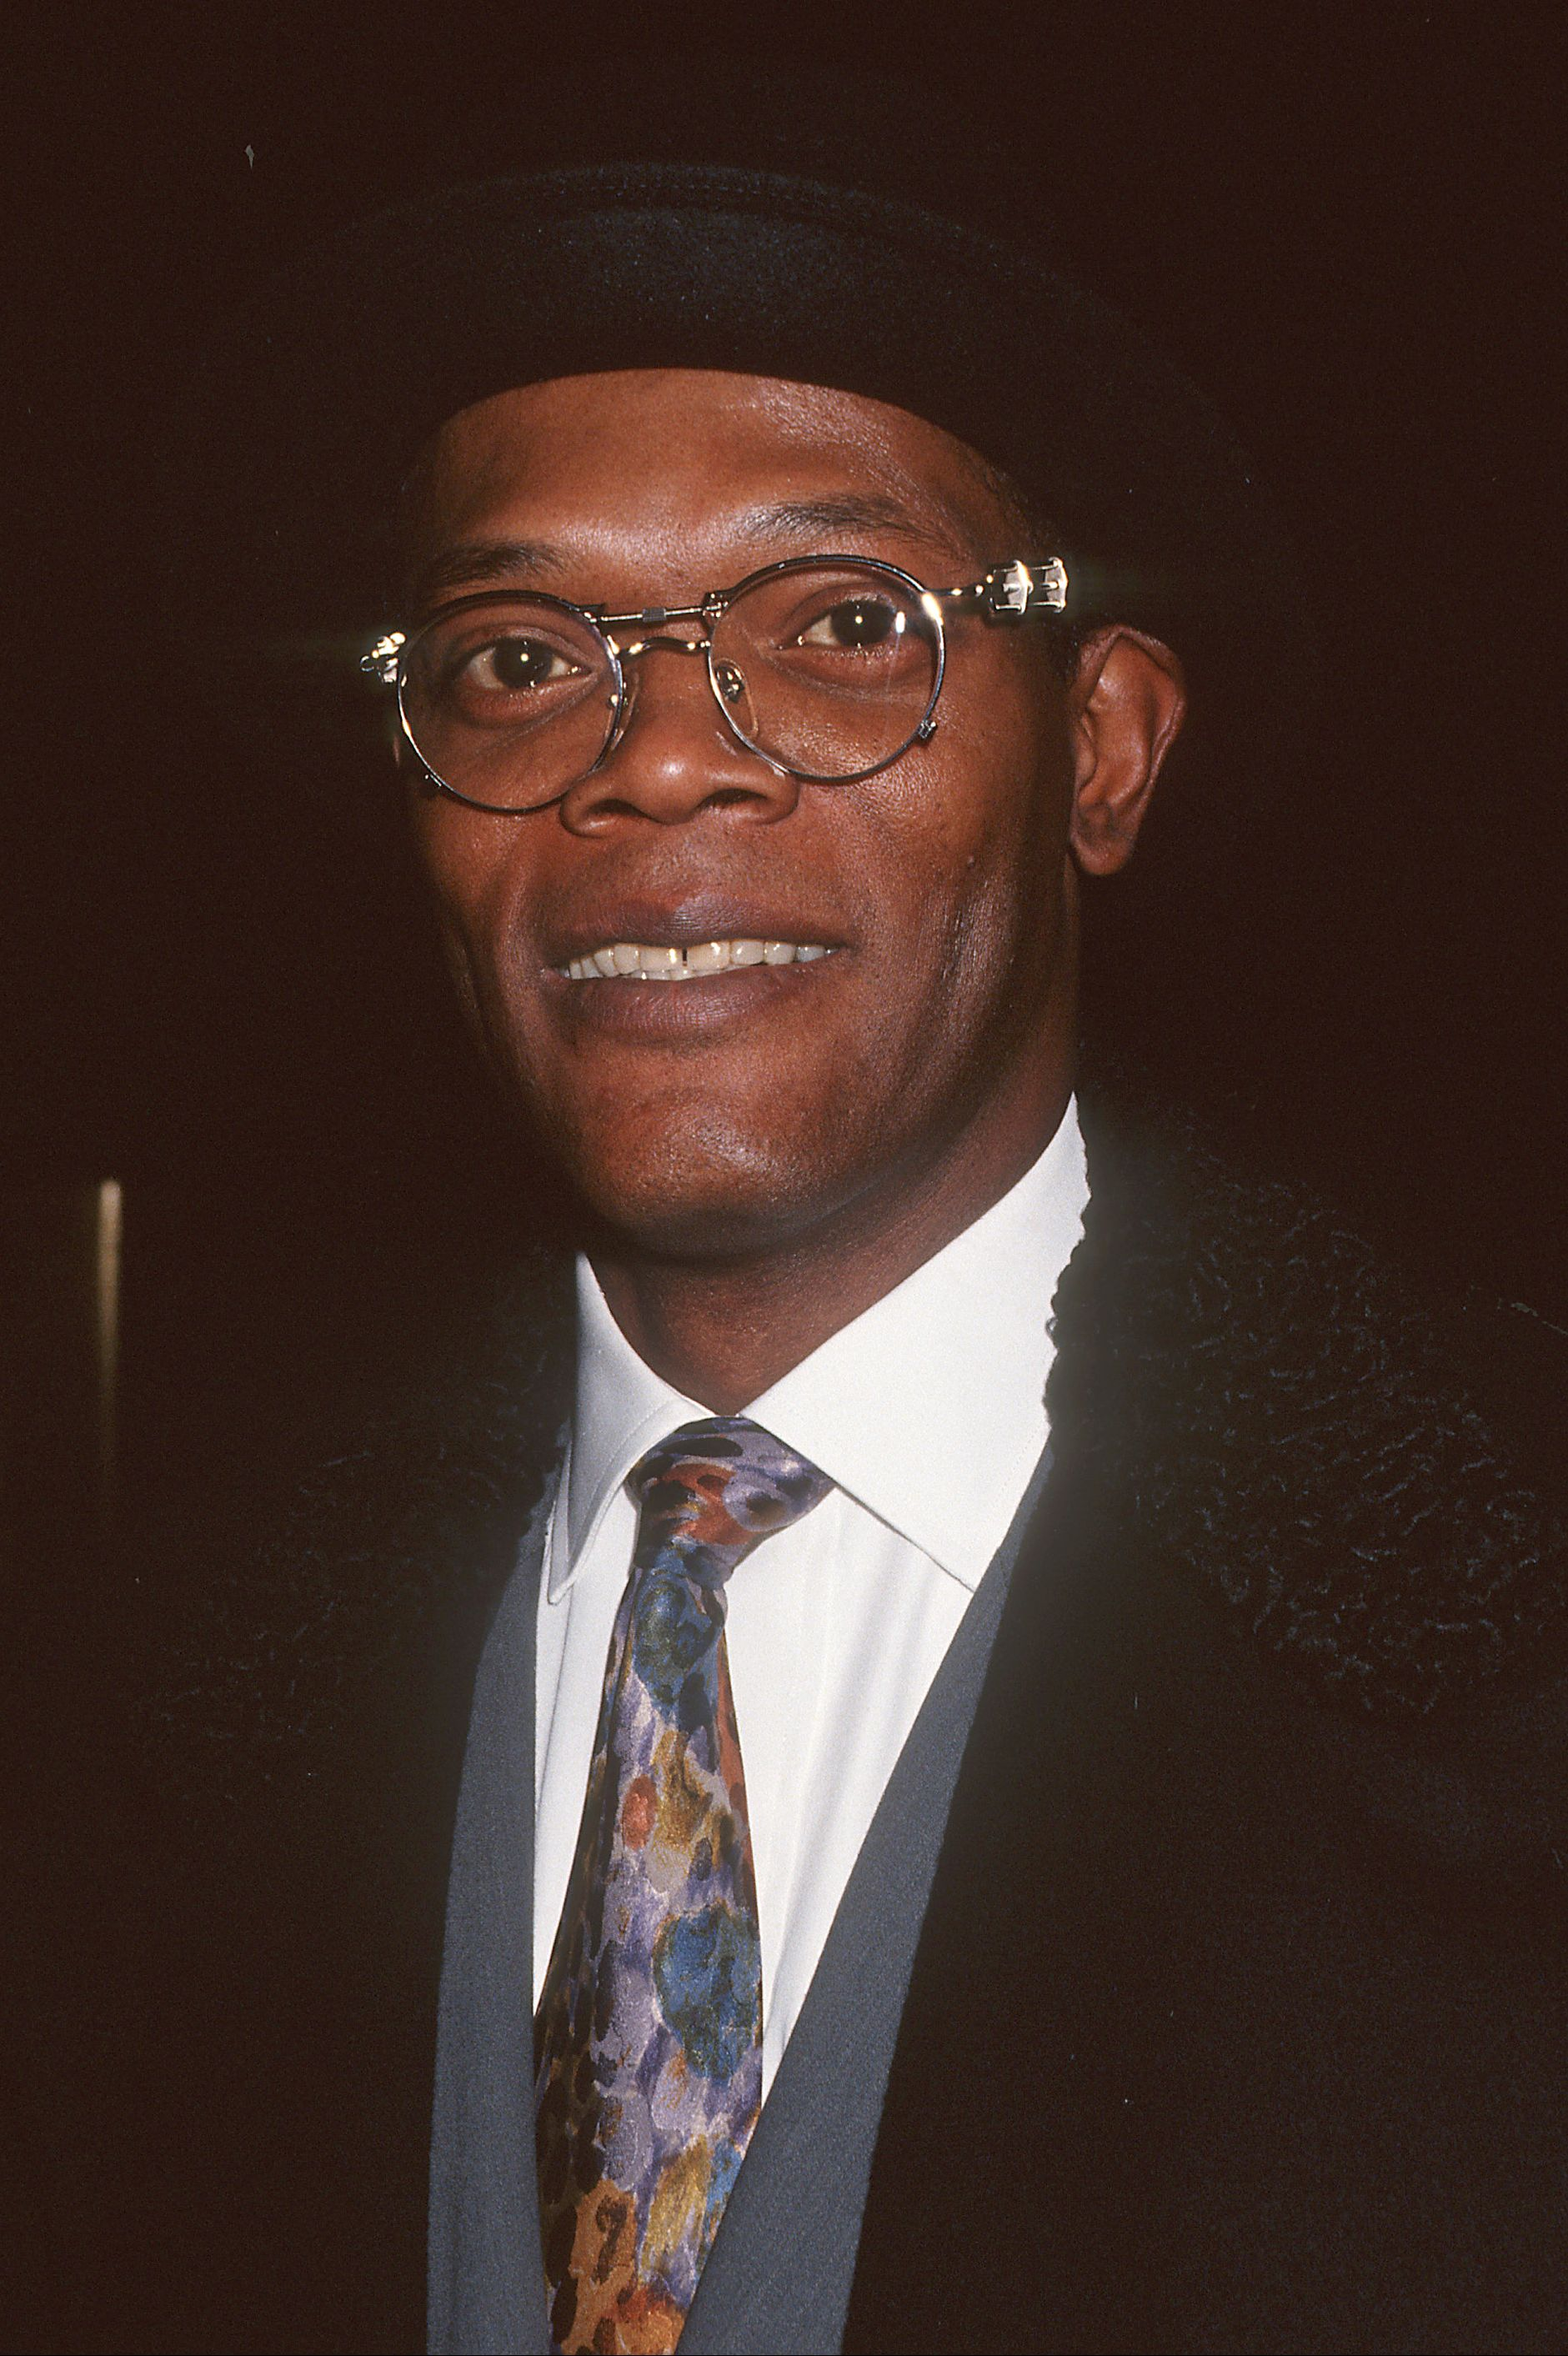 Samuel L. Jackson at 44 Jackson has appeared in more than 120 movies, which combined have earned $13.3 billion worldwide.